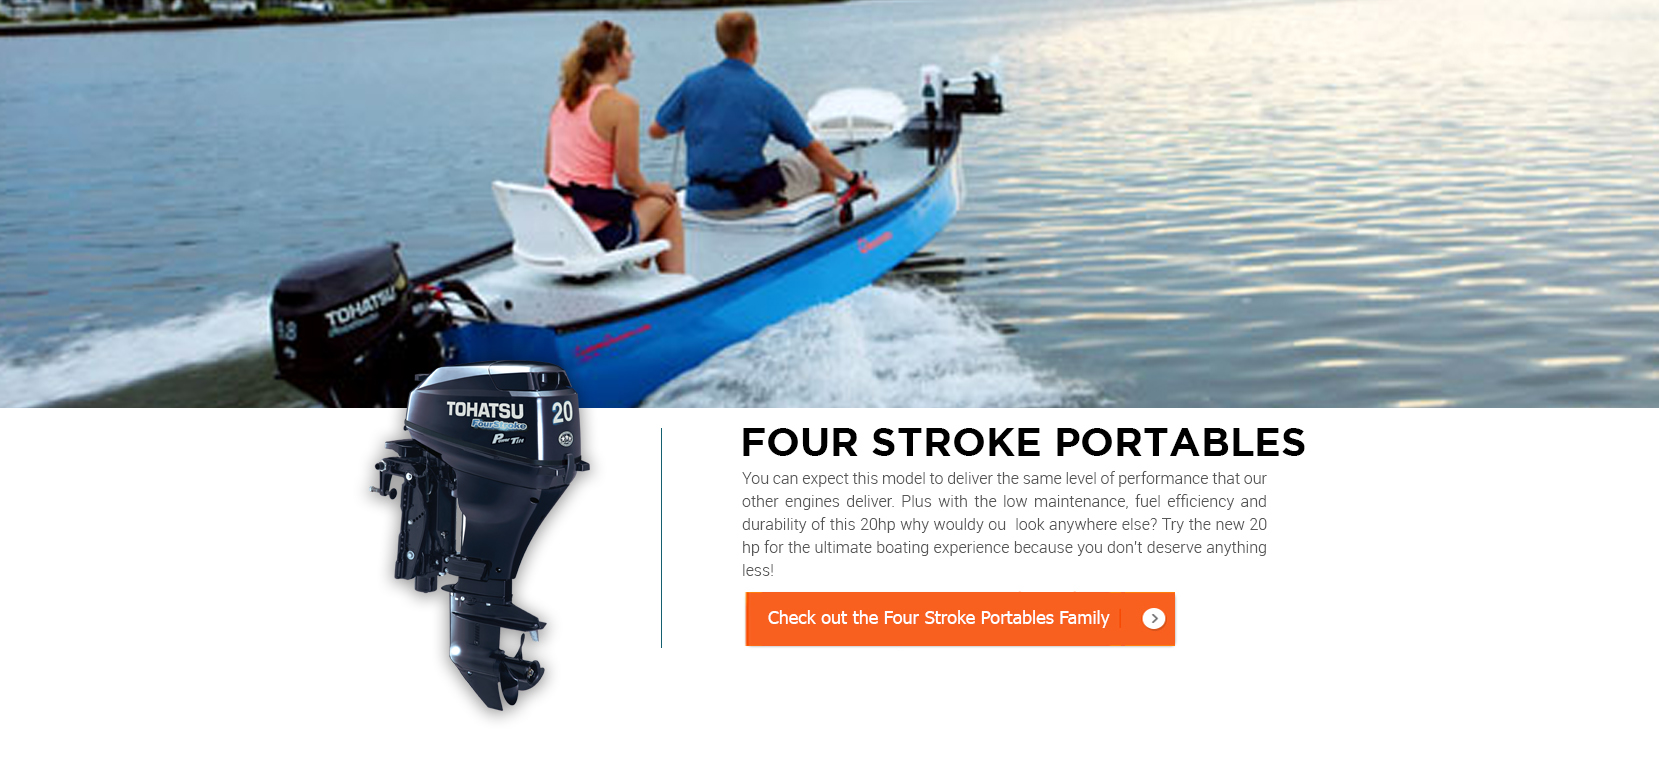 Tohatsu outboard engine tohatsu outboard engines for sale for Tohatsu boat motors for sale